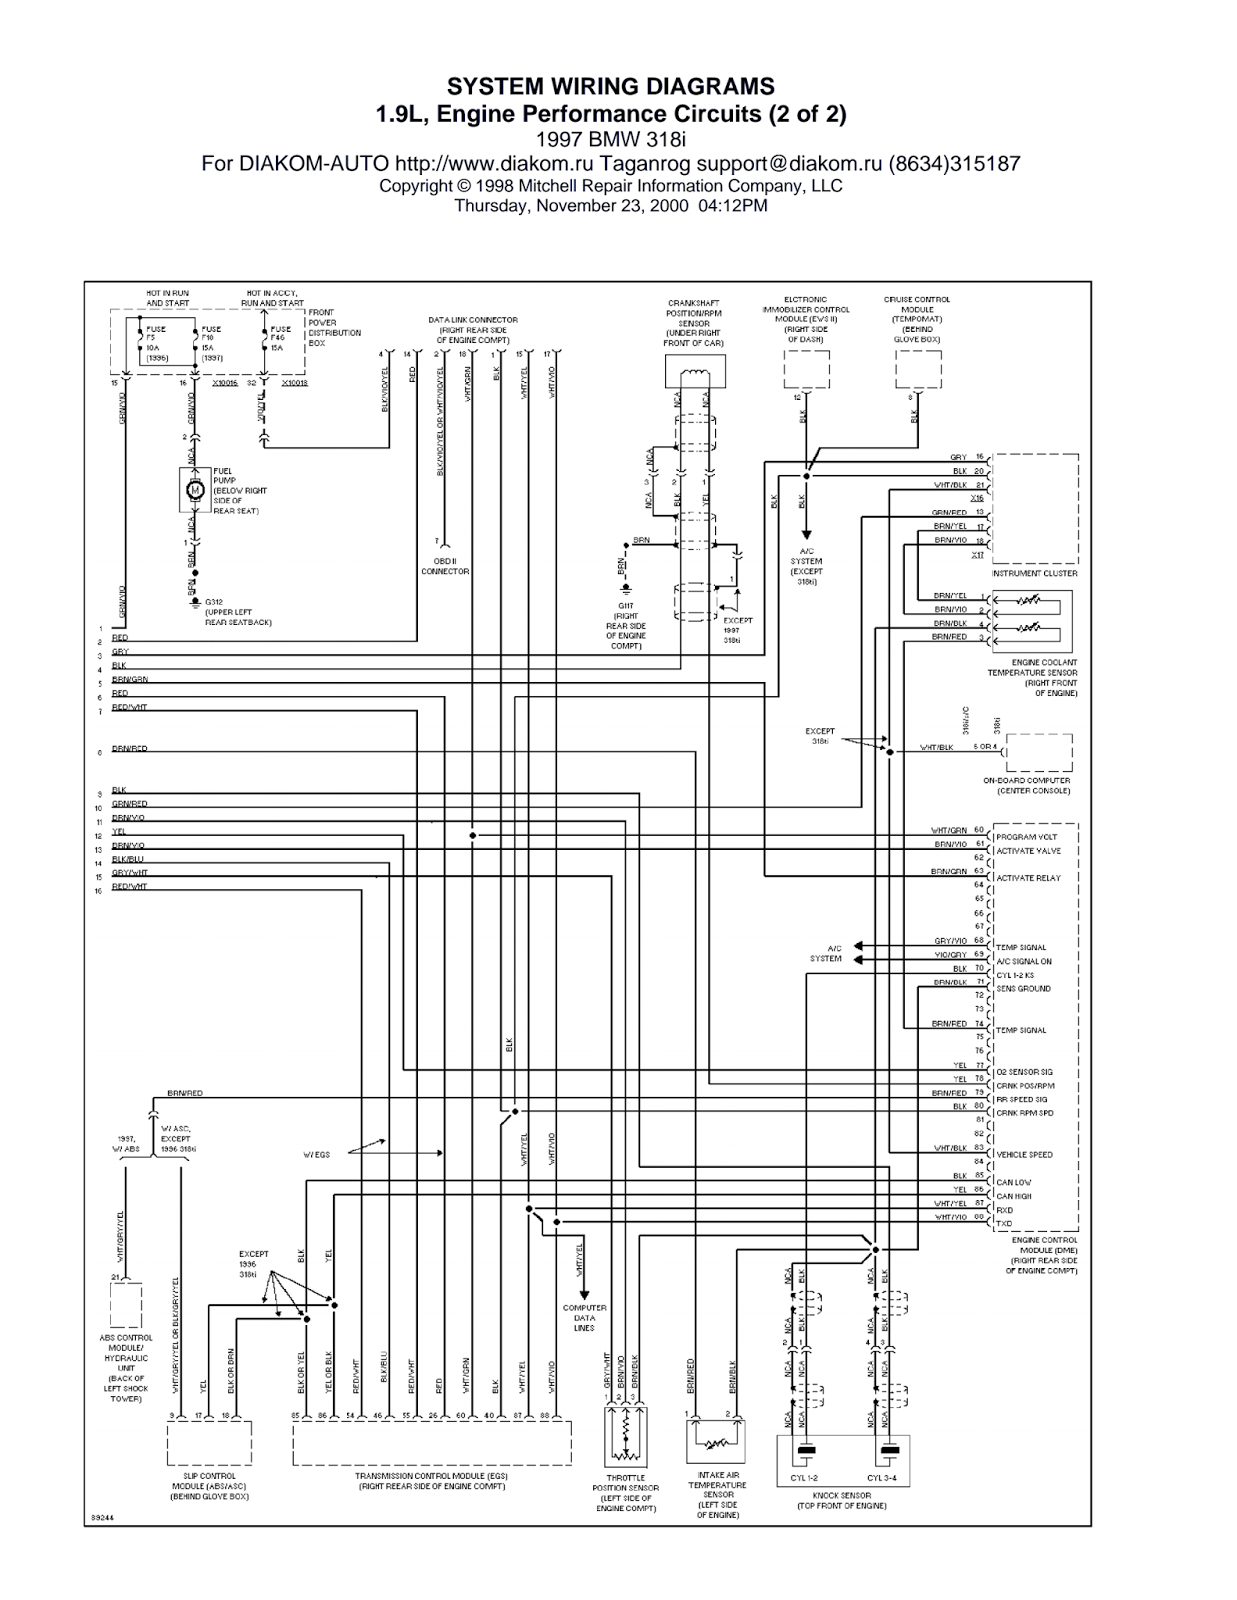 Wiring Diagrams And Free Manual Ebooks 1997 Bmw 318i 1 9l